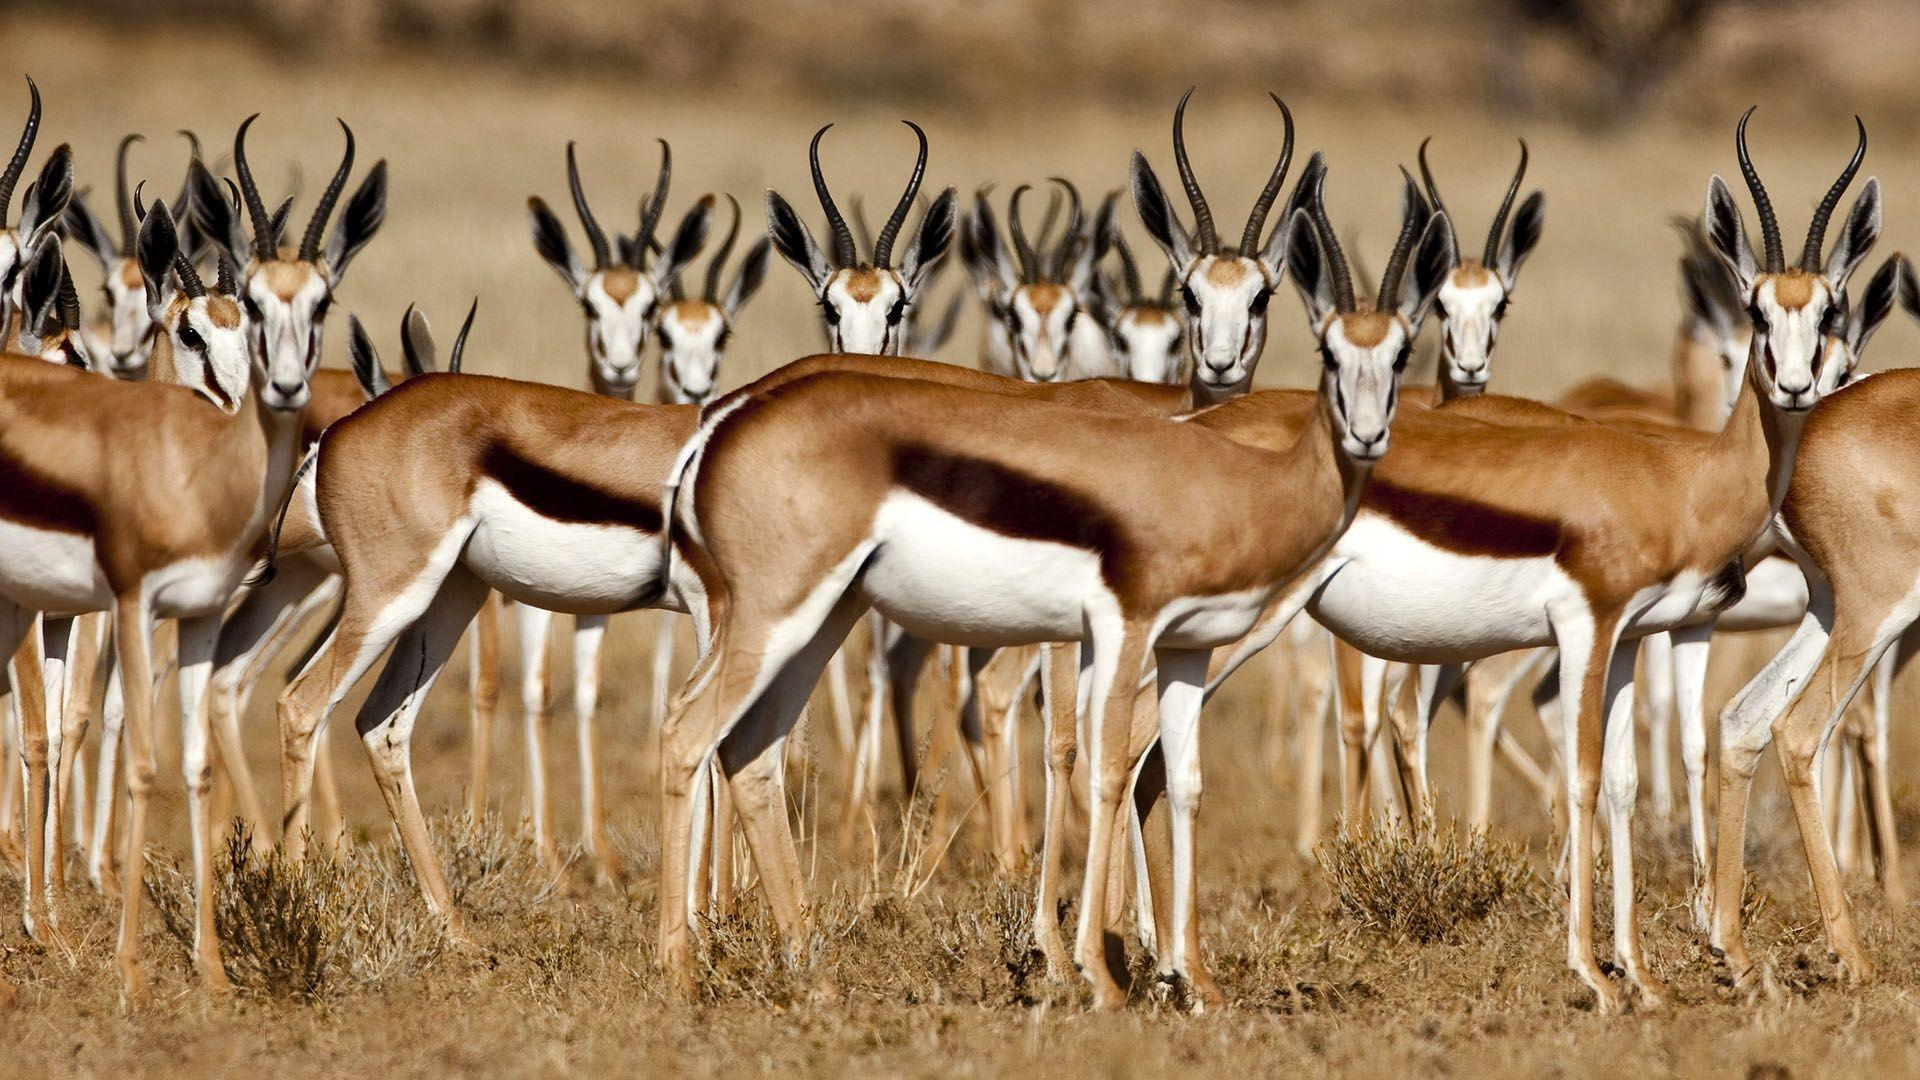 Gazelle Full HD Wallpaper and Background Image | 1920x1080 | ID:364765